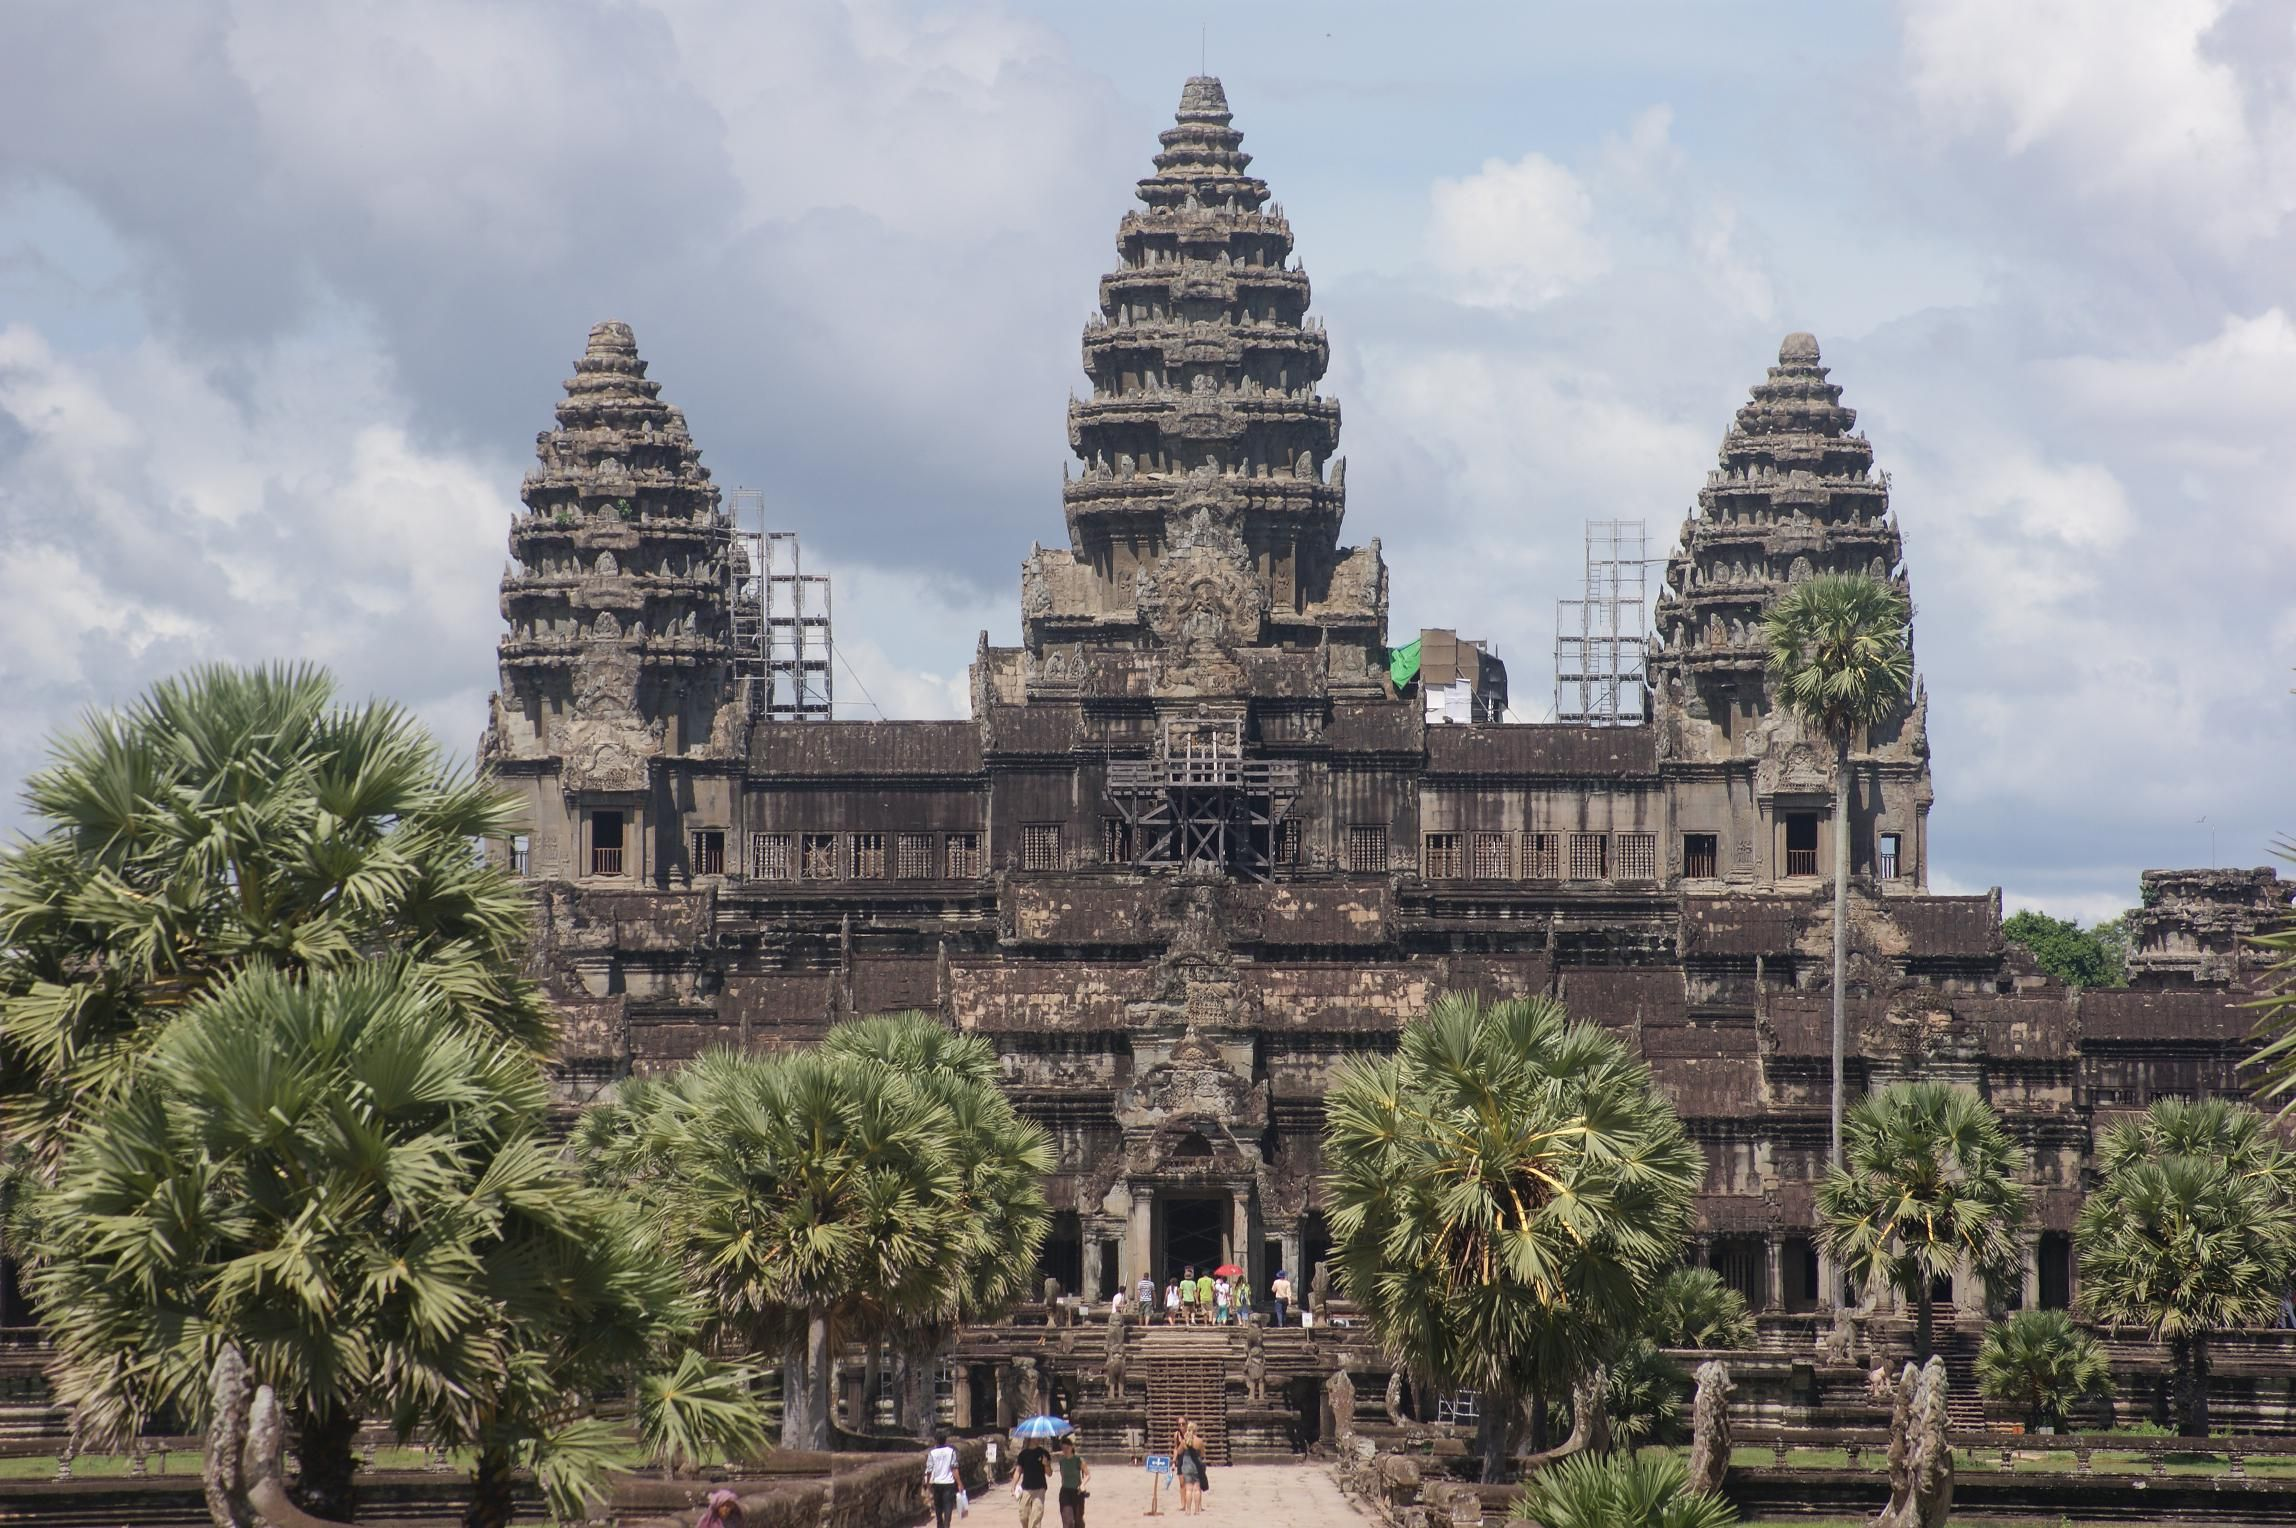 Angkor Wat (Khmer: អង្គរវត្ត) was first a Hindu, then subsequently, a Buddhist temple complex in Cambodia and the largest religious monument in the world. The temple was built by the Khmer King Suryavarman II in the early 12th century in Yasodharapura (Khmer: យសោធរបុរៈ, present-day Angkor), the capital of the Khmer Empire, as his state temple and eventual mausoleum.